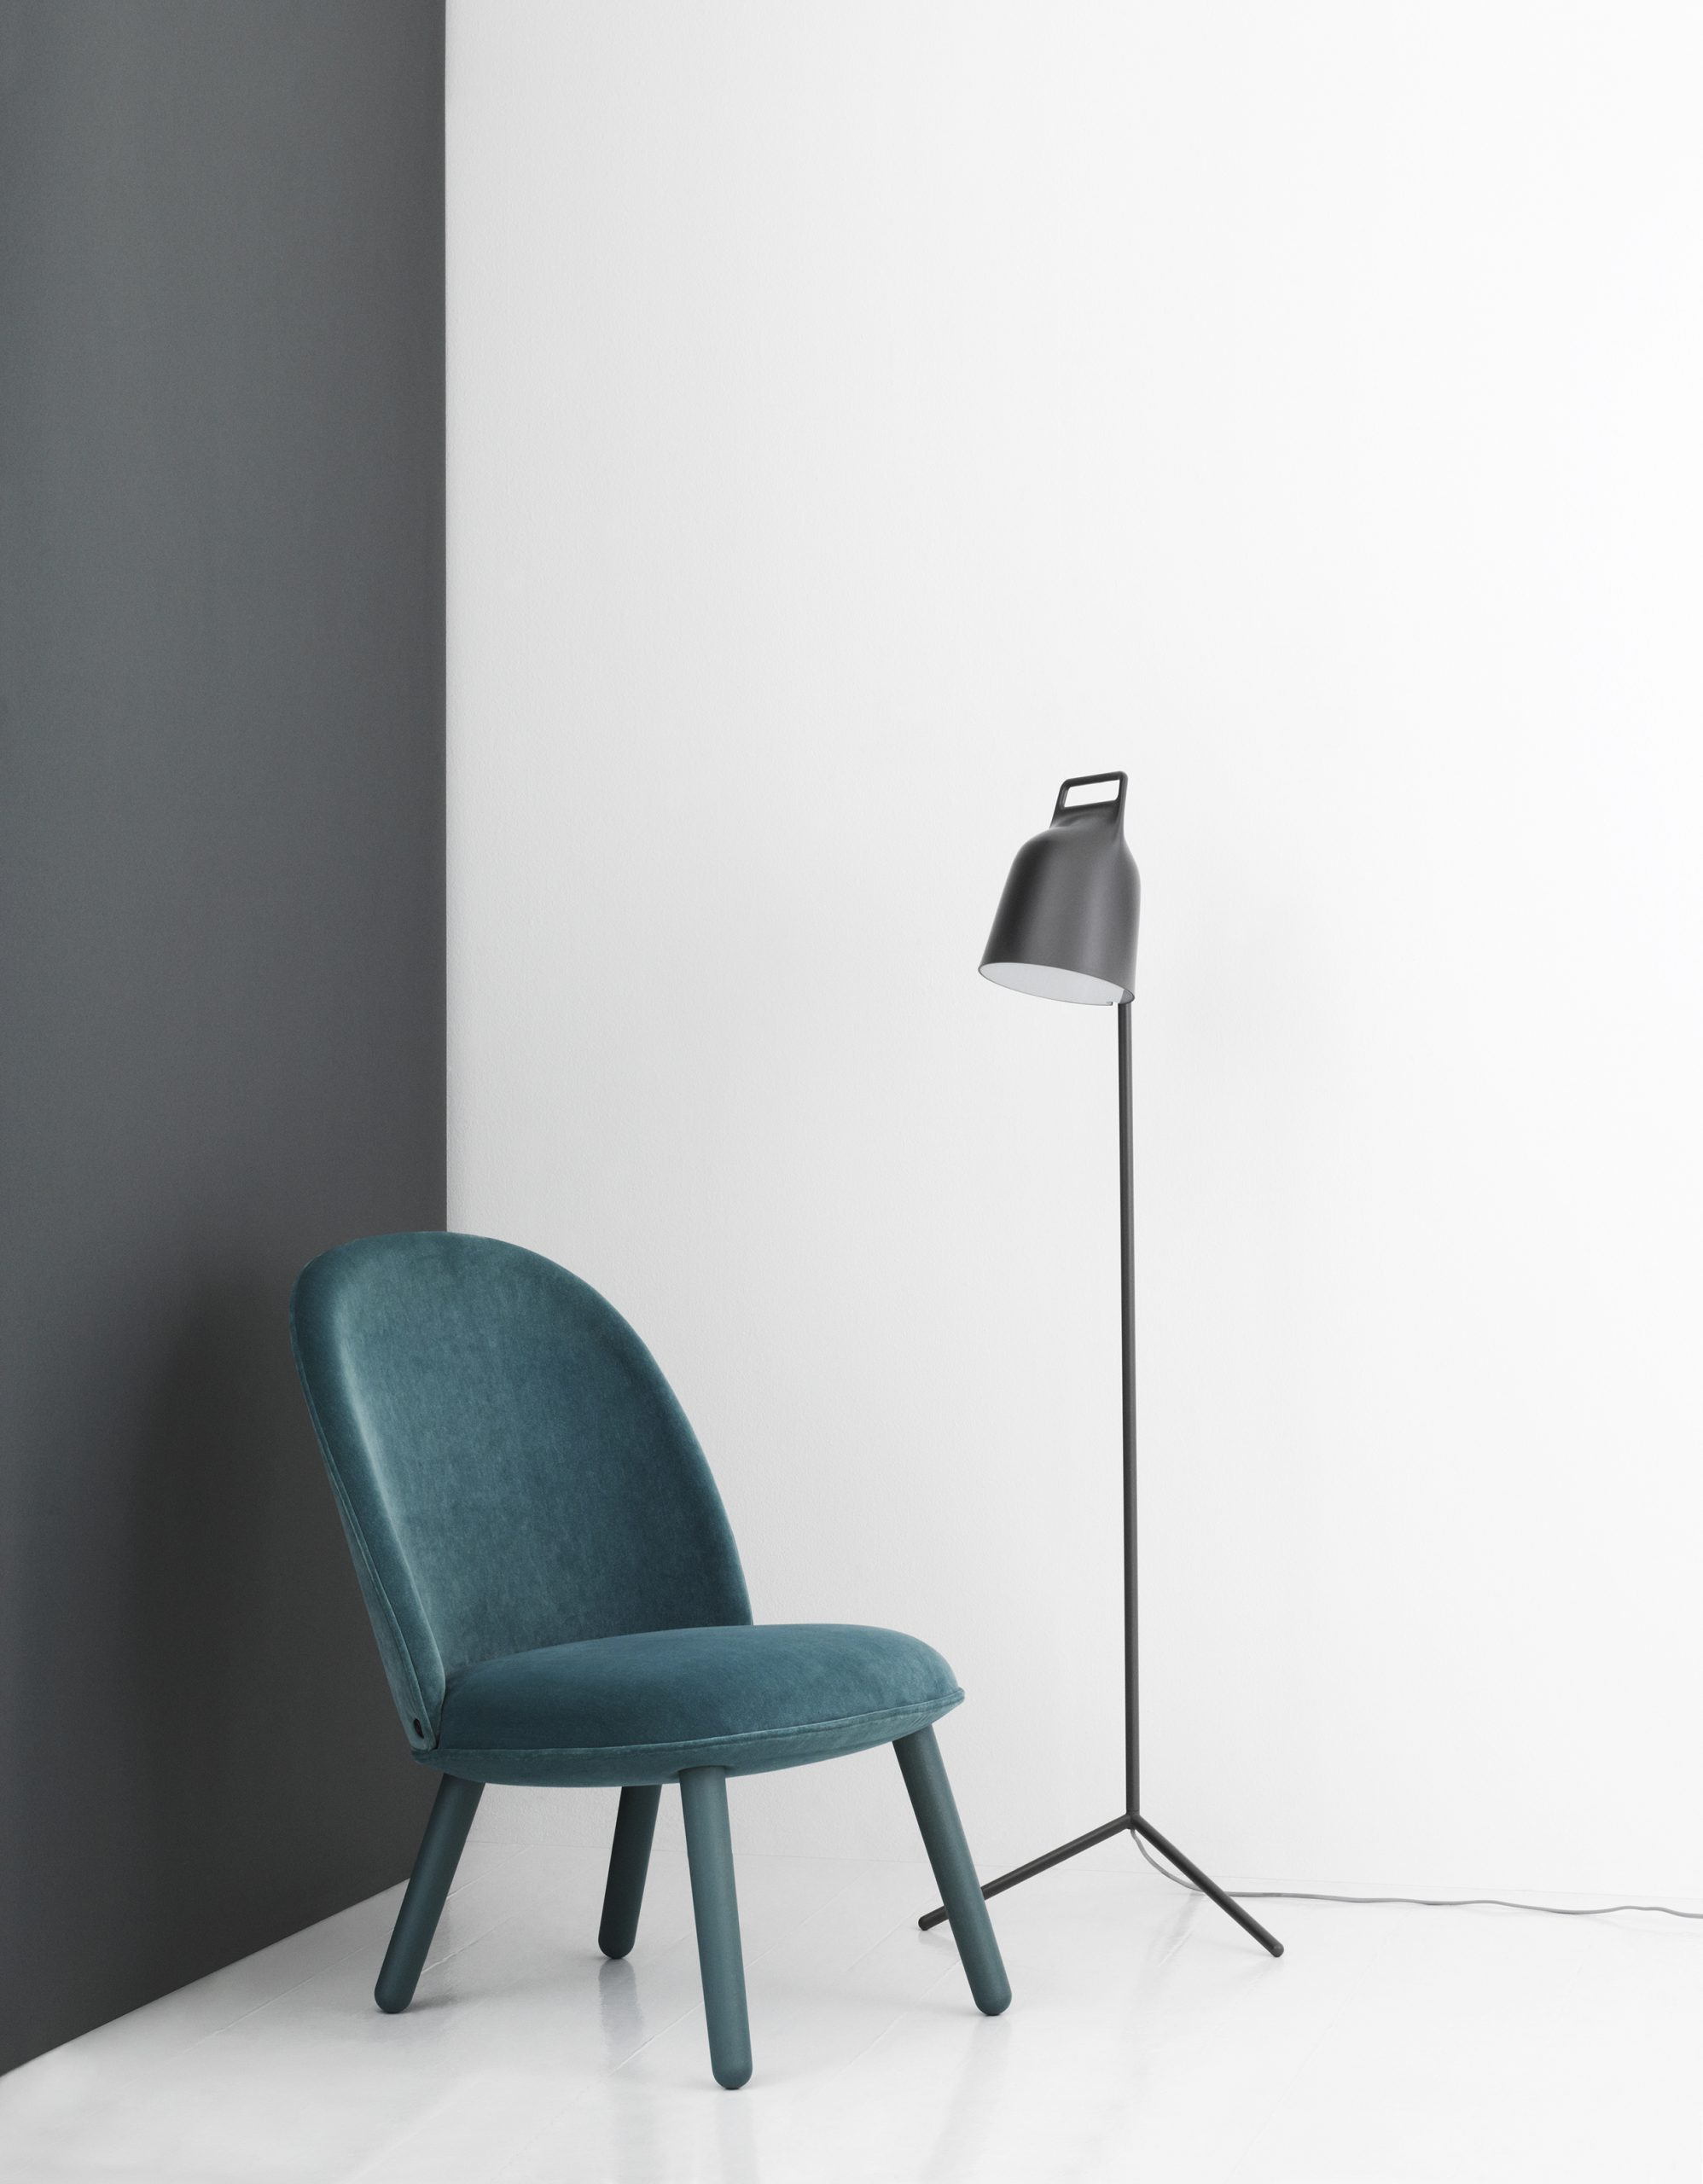 Stage floor lamp by Debiasi Sandri for Normann Copenhagen